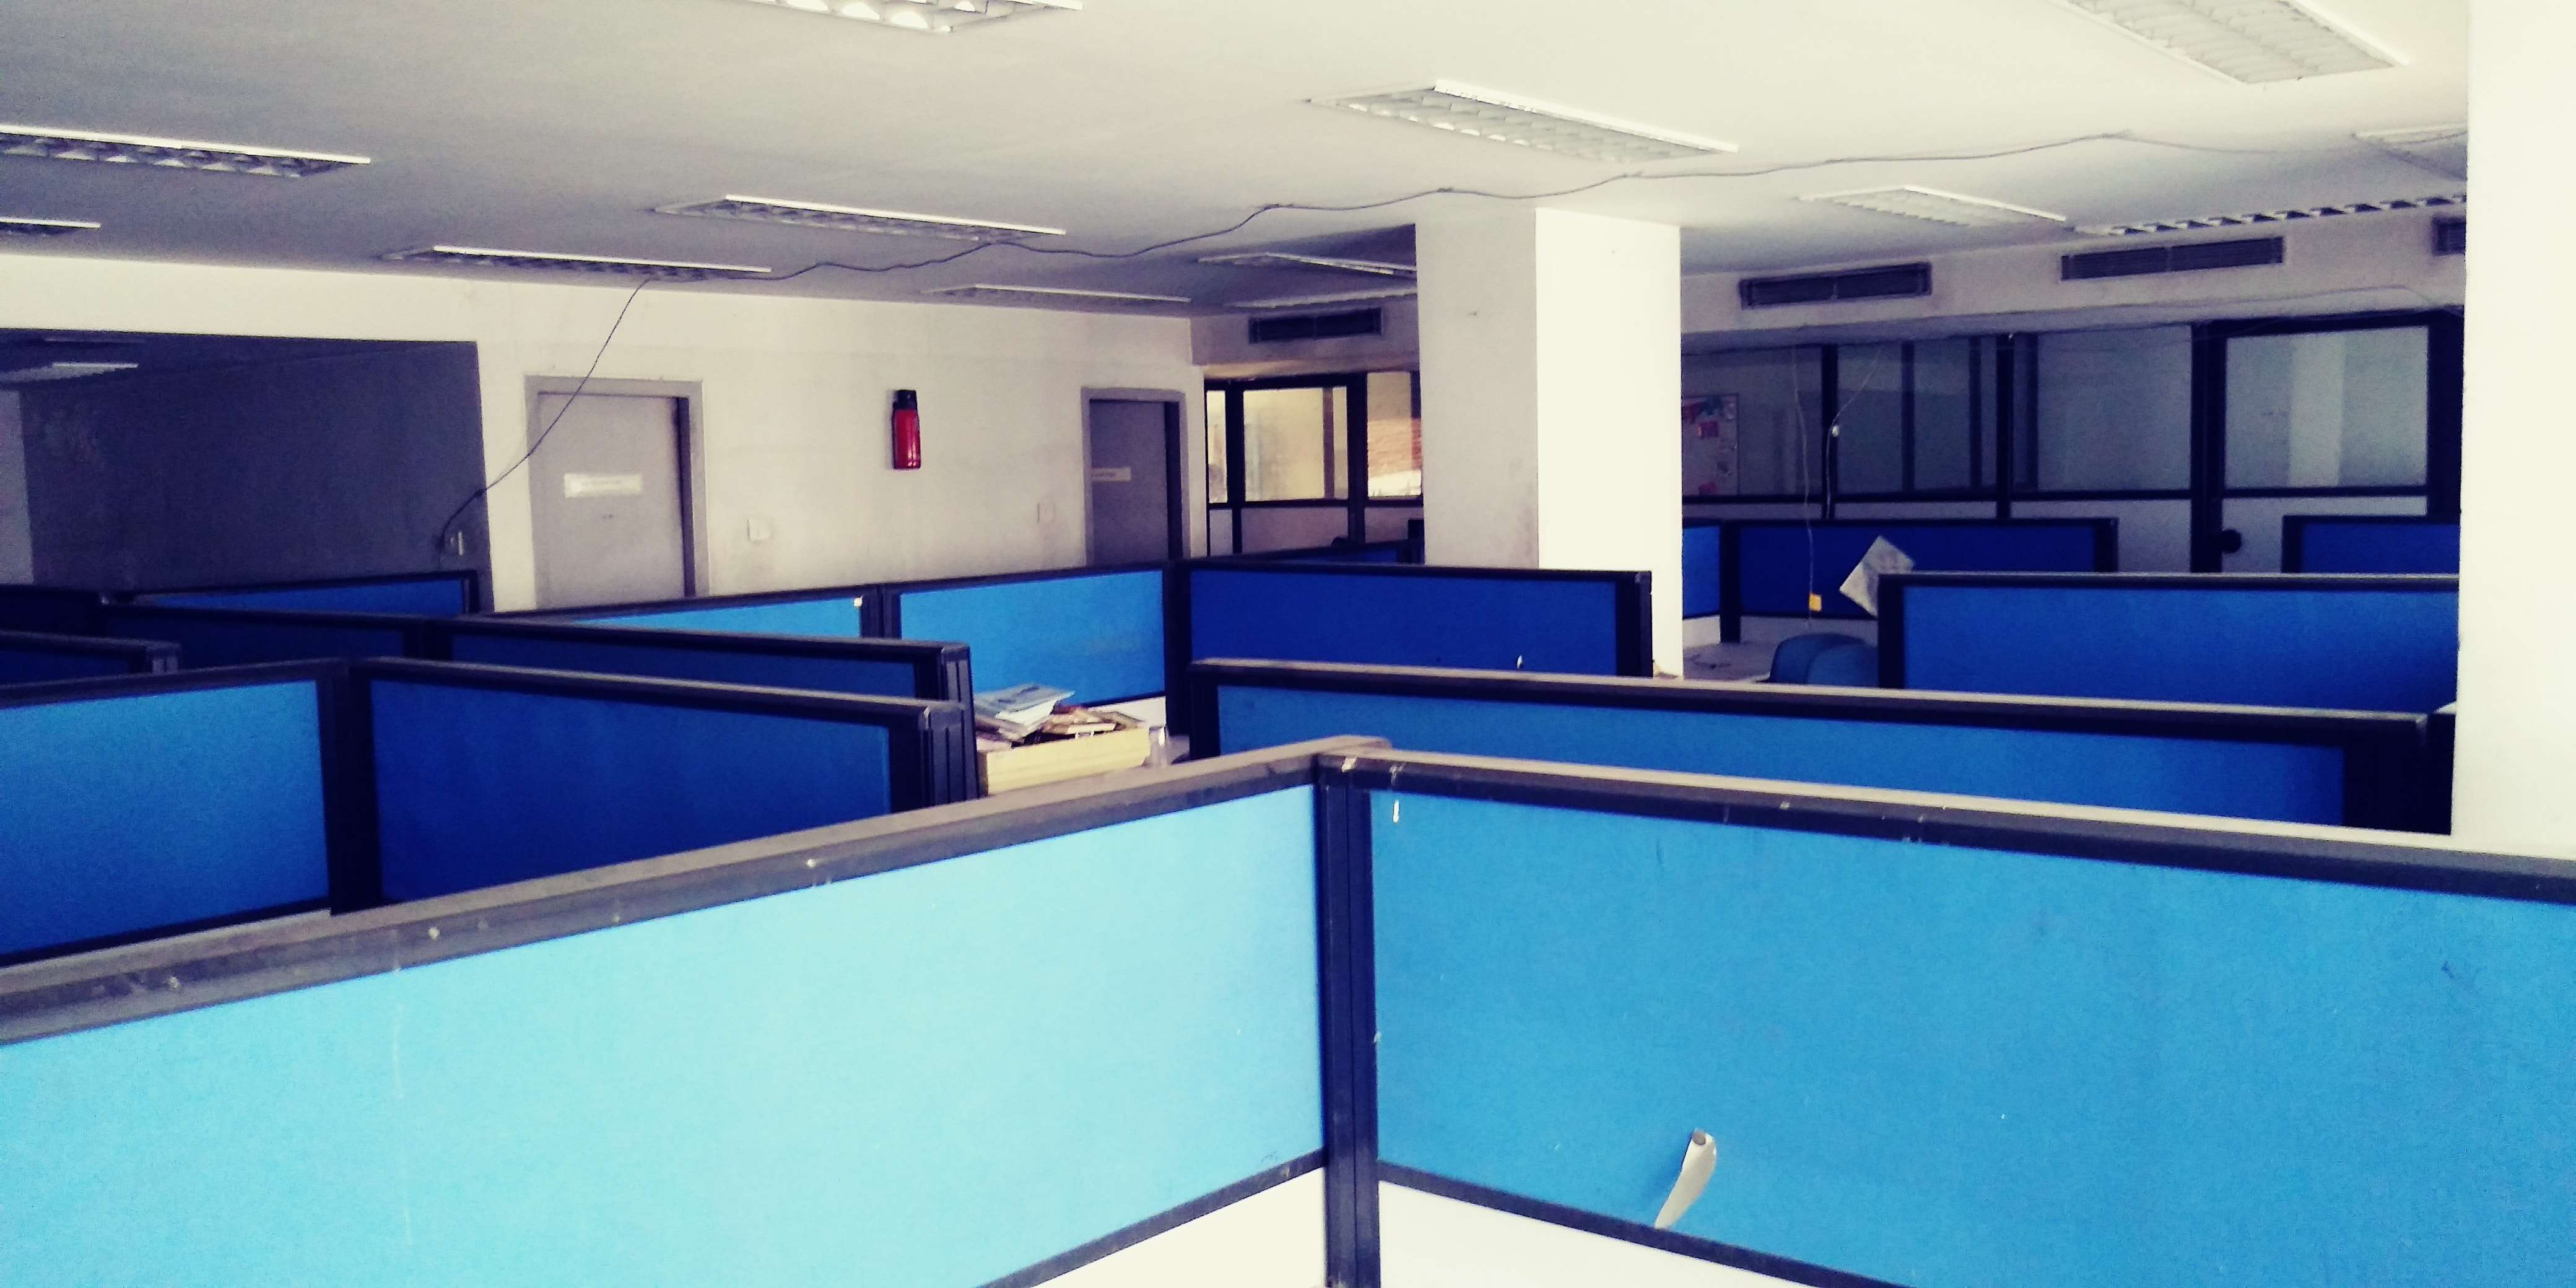 Office Space for Sale in Secunderabad Hyderabad